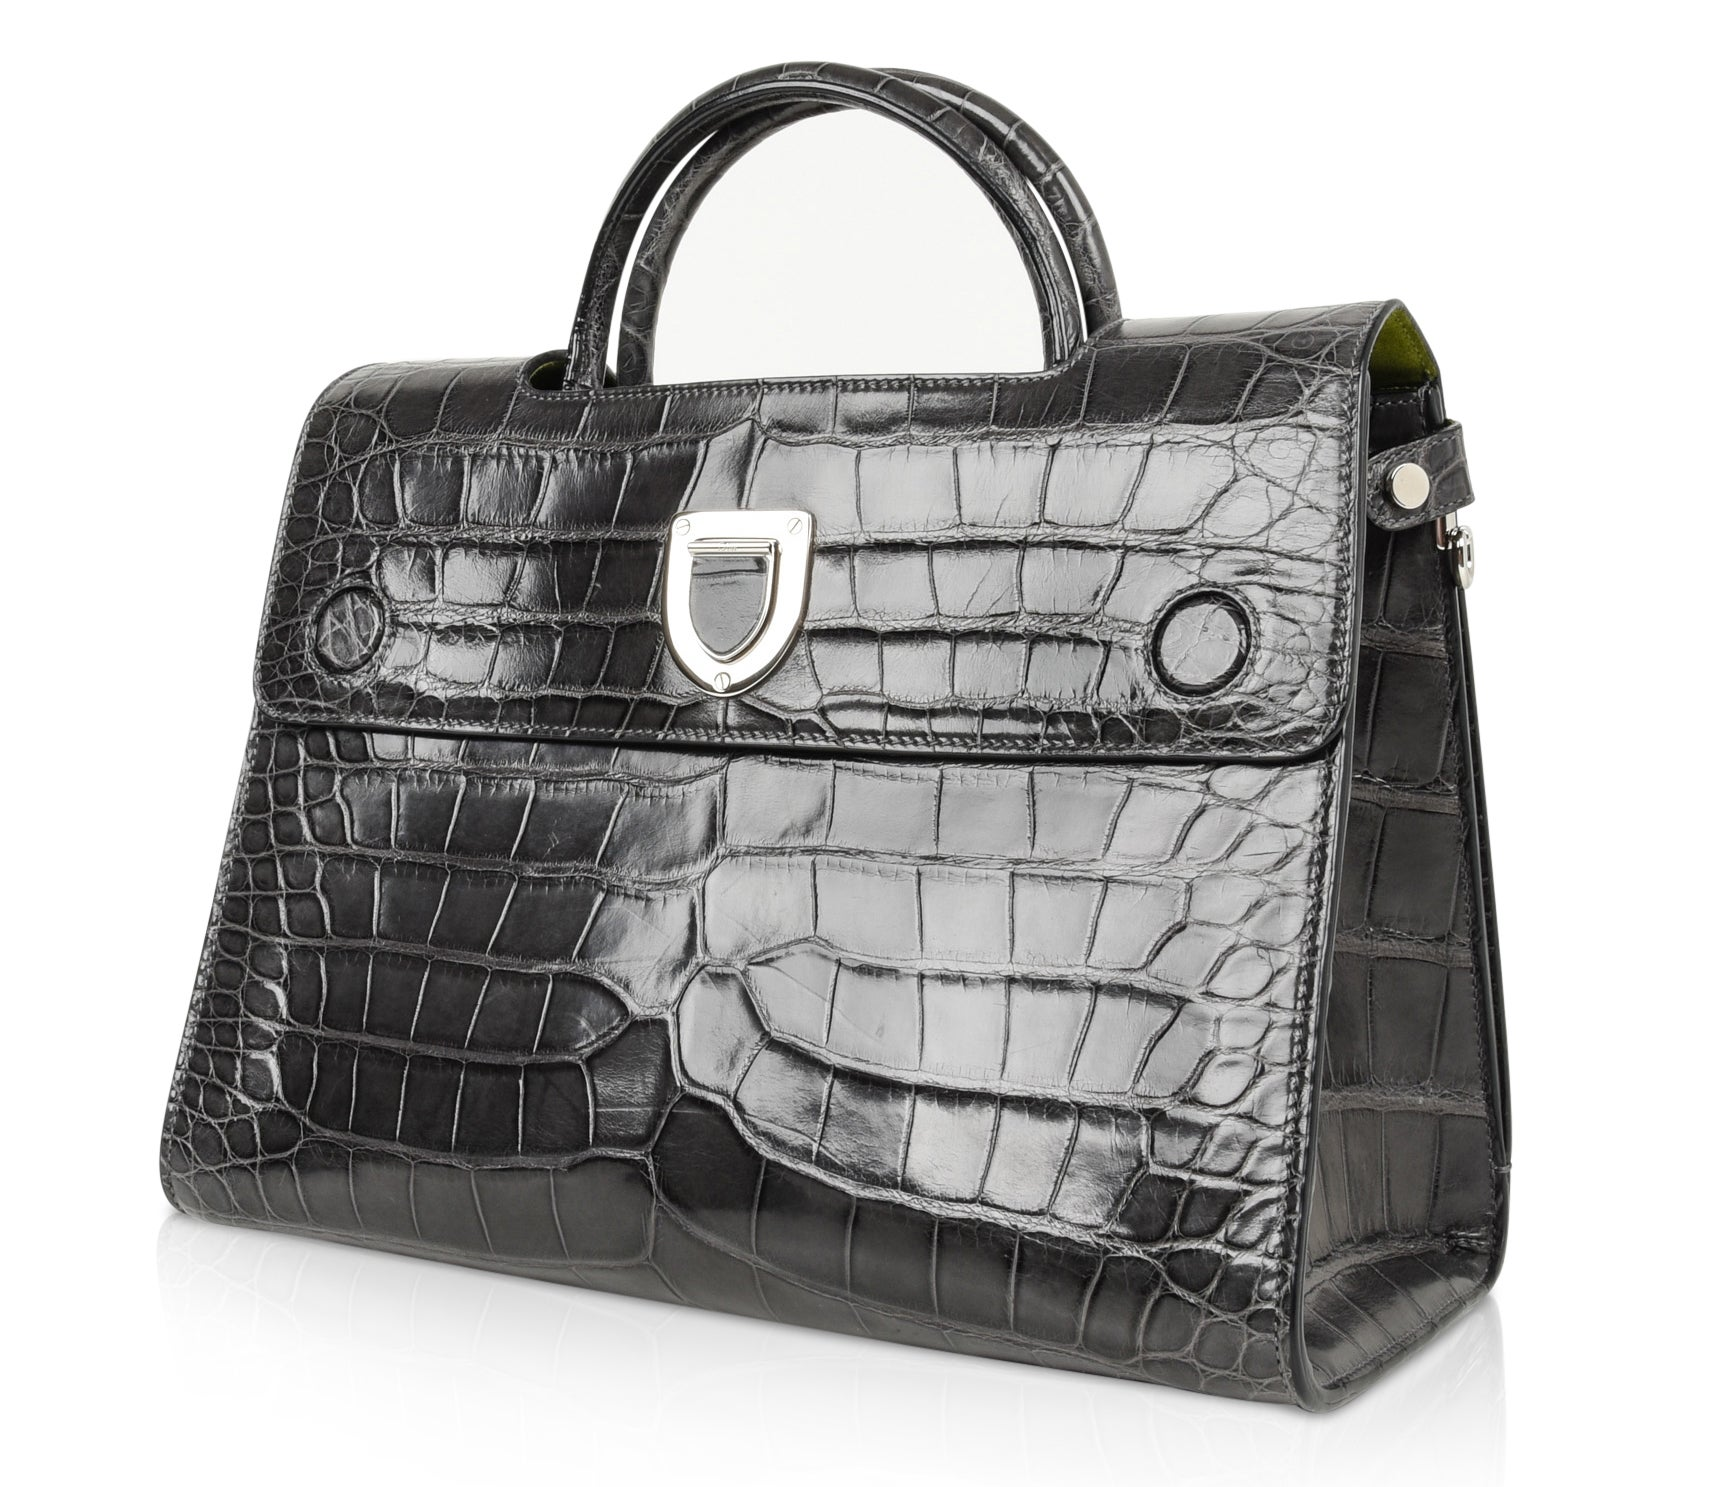 20dc6b7032ba Christian Dior Bag Diorever Matte Gray Crocodile Tote Shoulder Strap For  Sale at 1stdibs